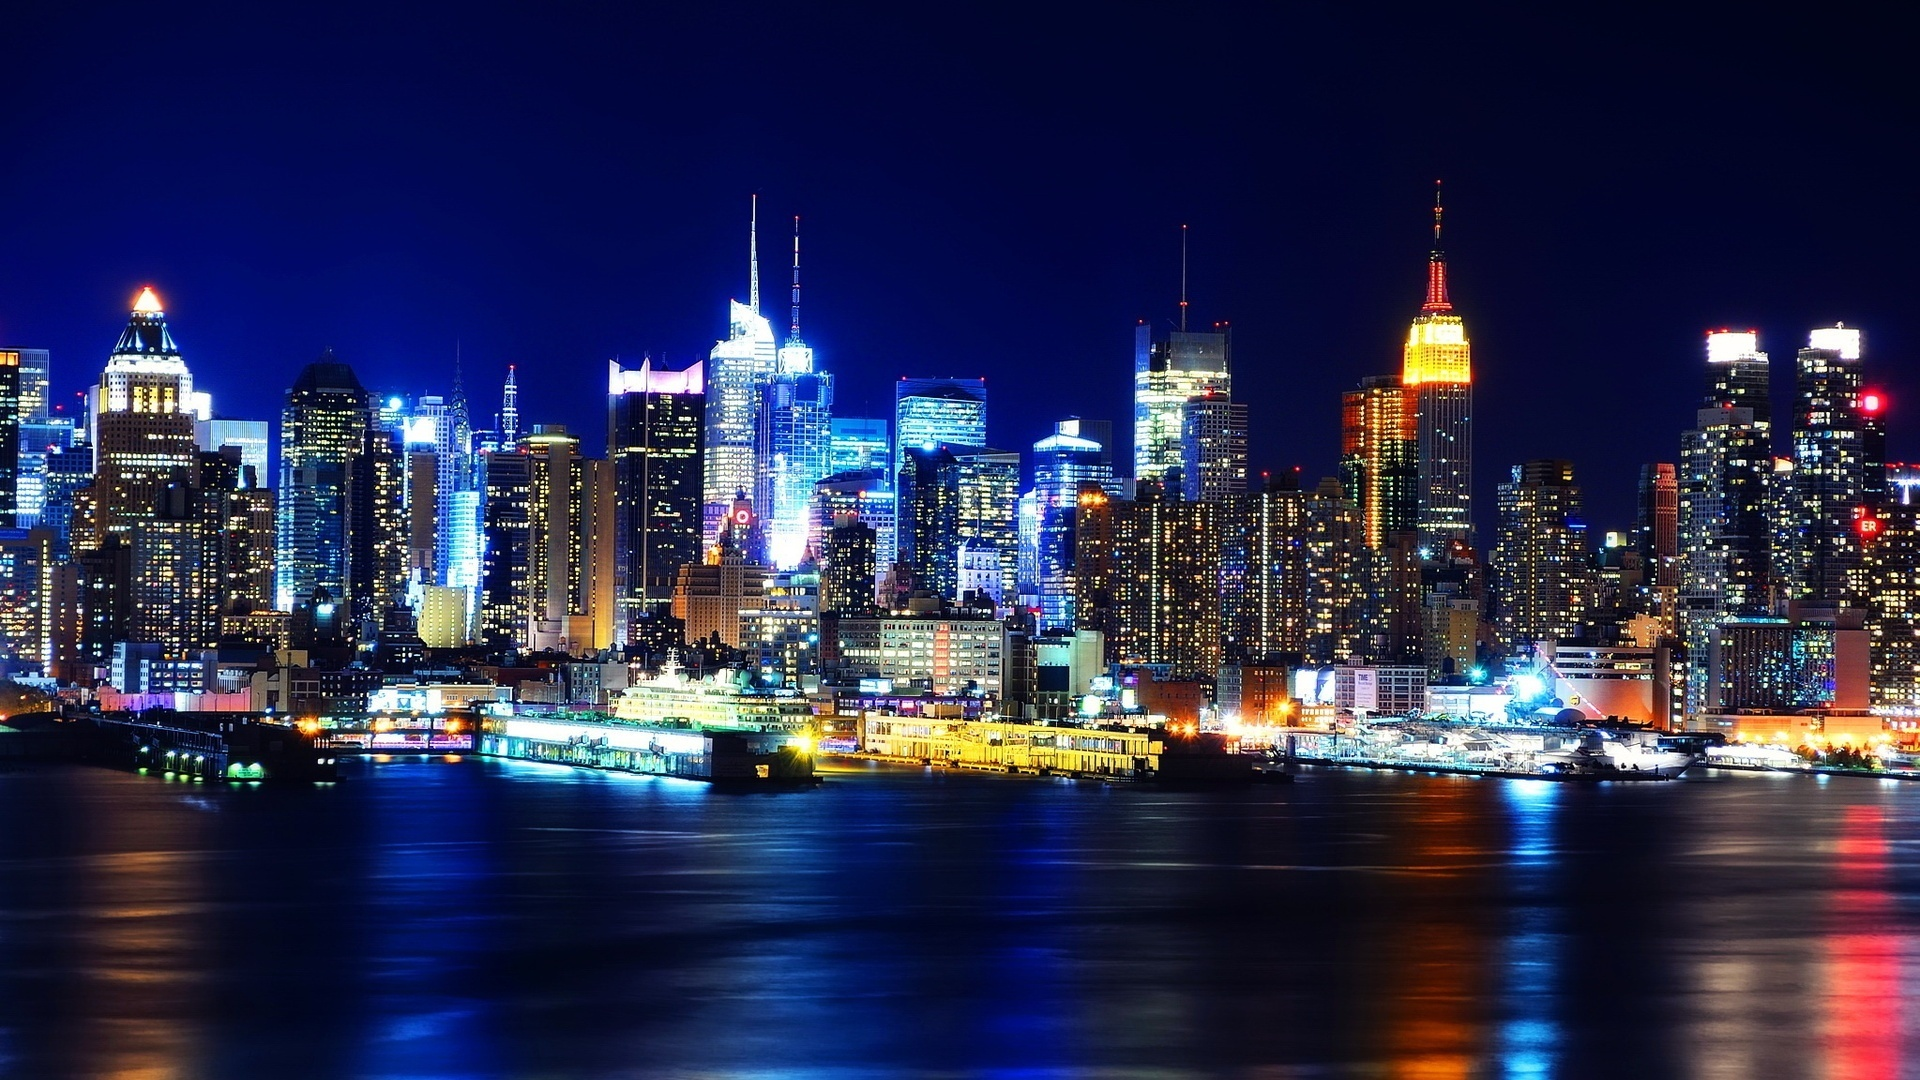 Night New York